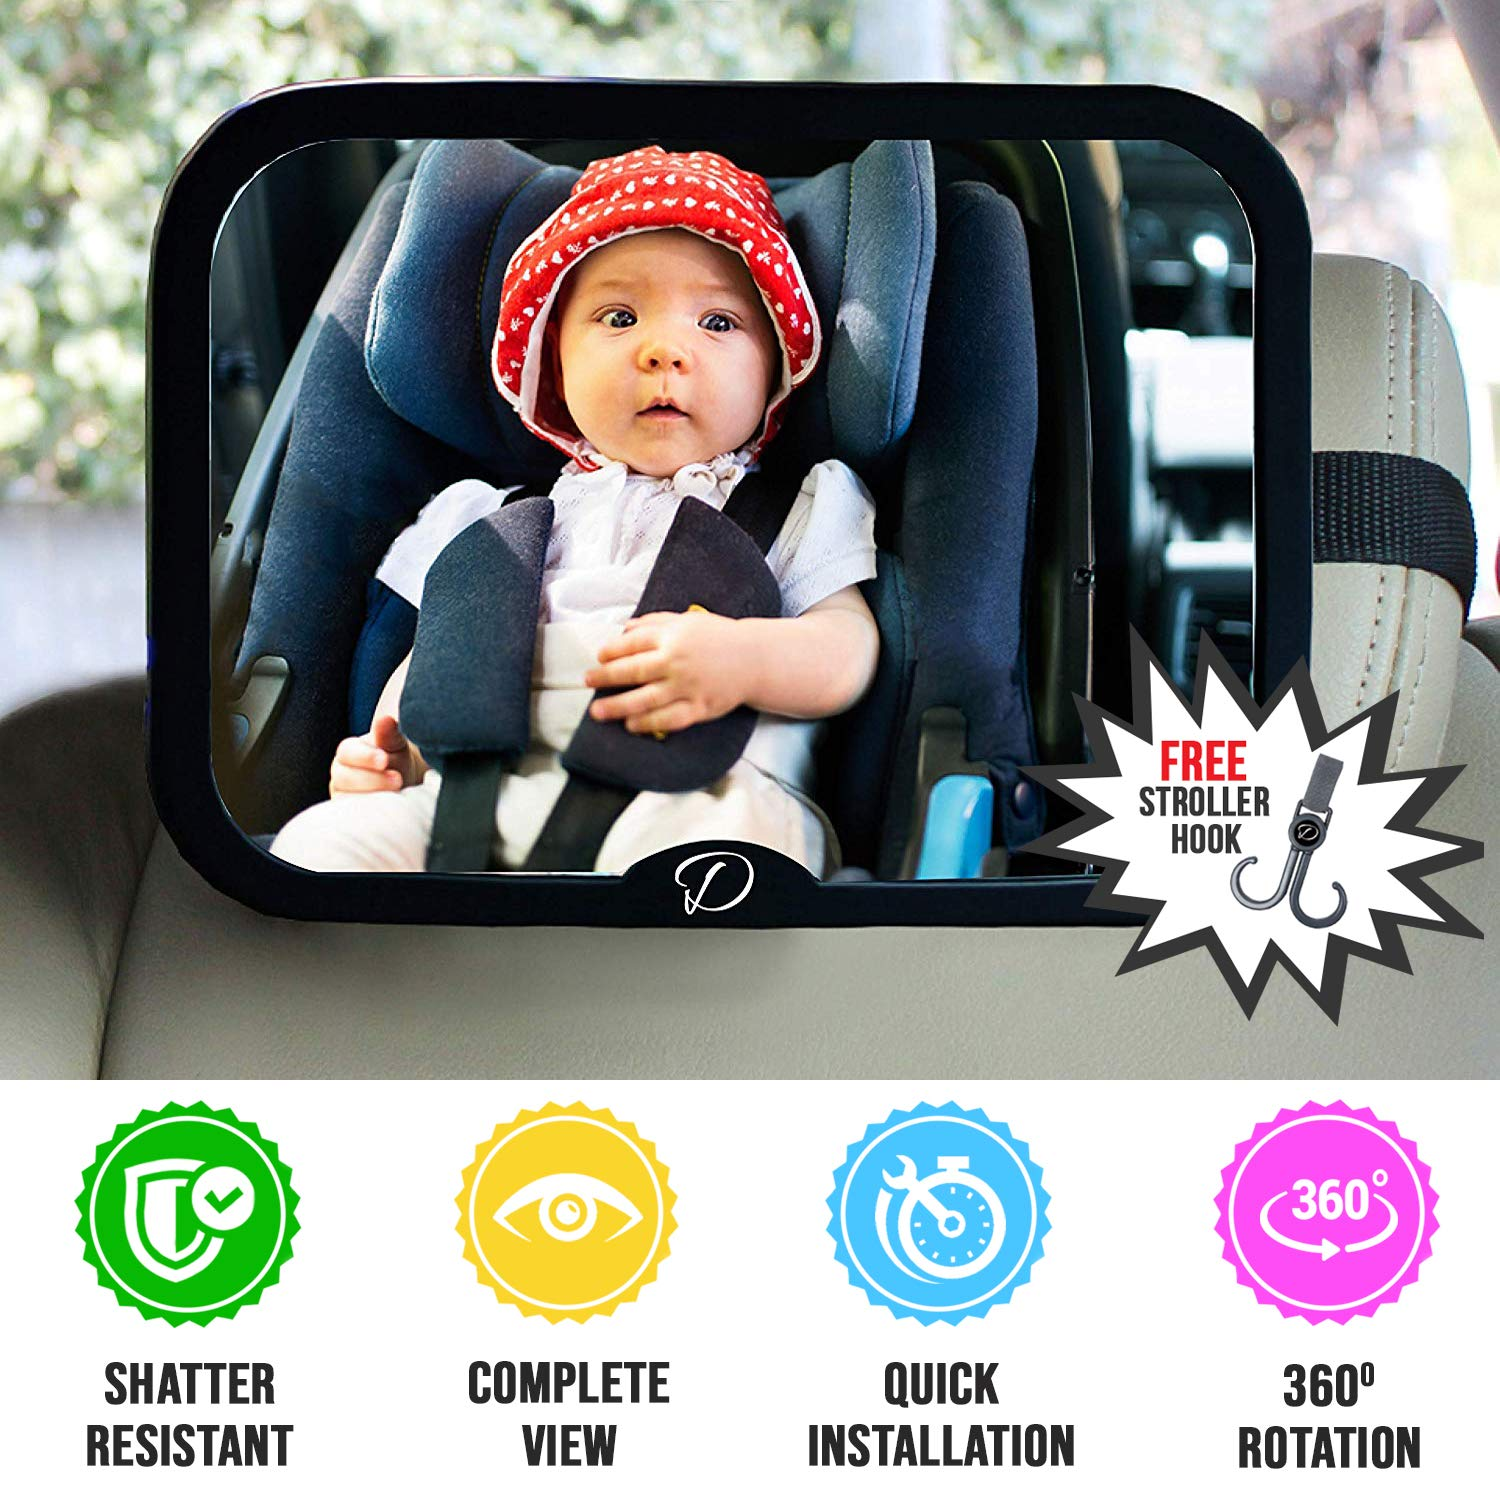 Baby Car Mirror for Back Seat - Full View Infant in Rear Facing Car Seat with Crystal Clear Safety Shatterproof 360 Degree Adjustable Strong Joint by Dave Design